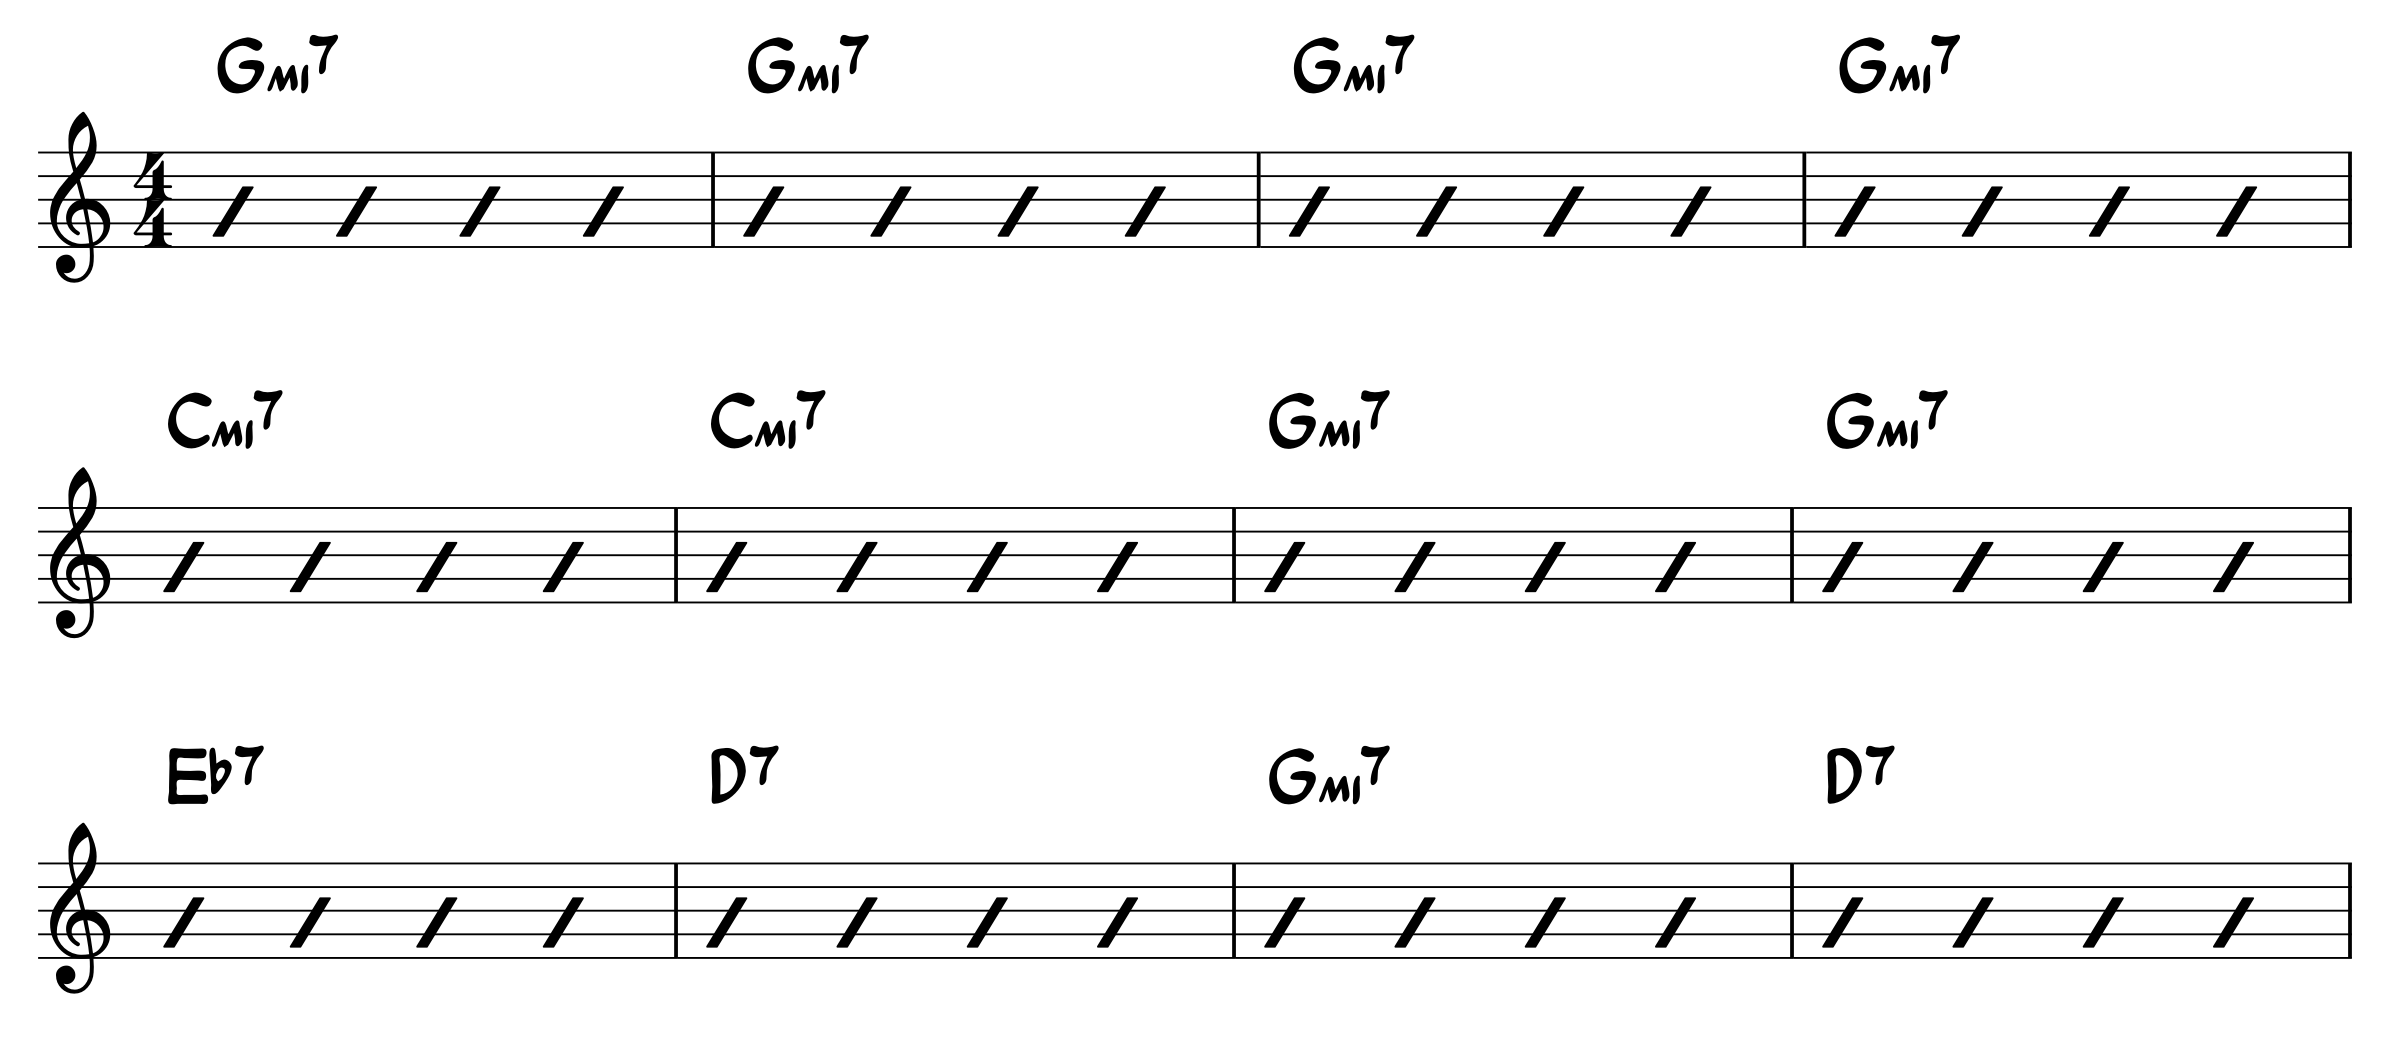 Chart for G minor blues progression Form 2